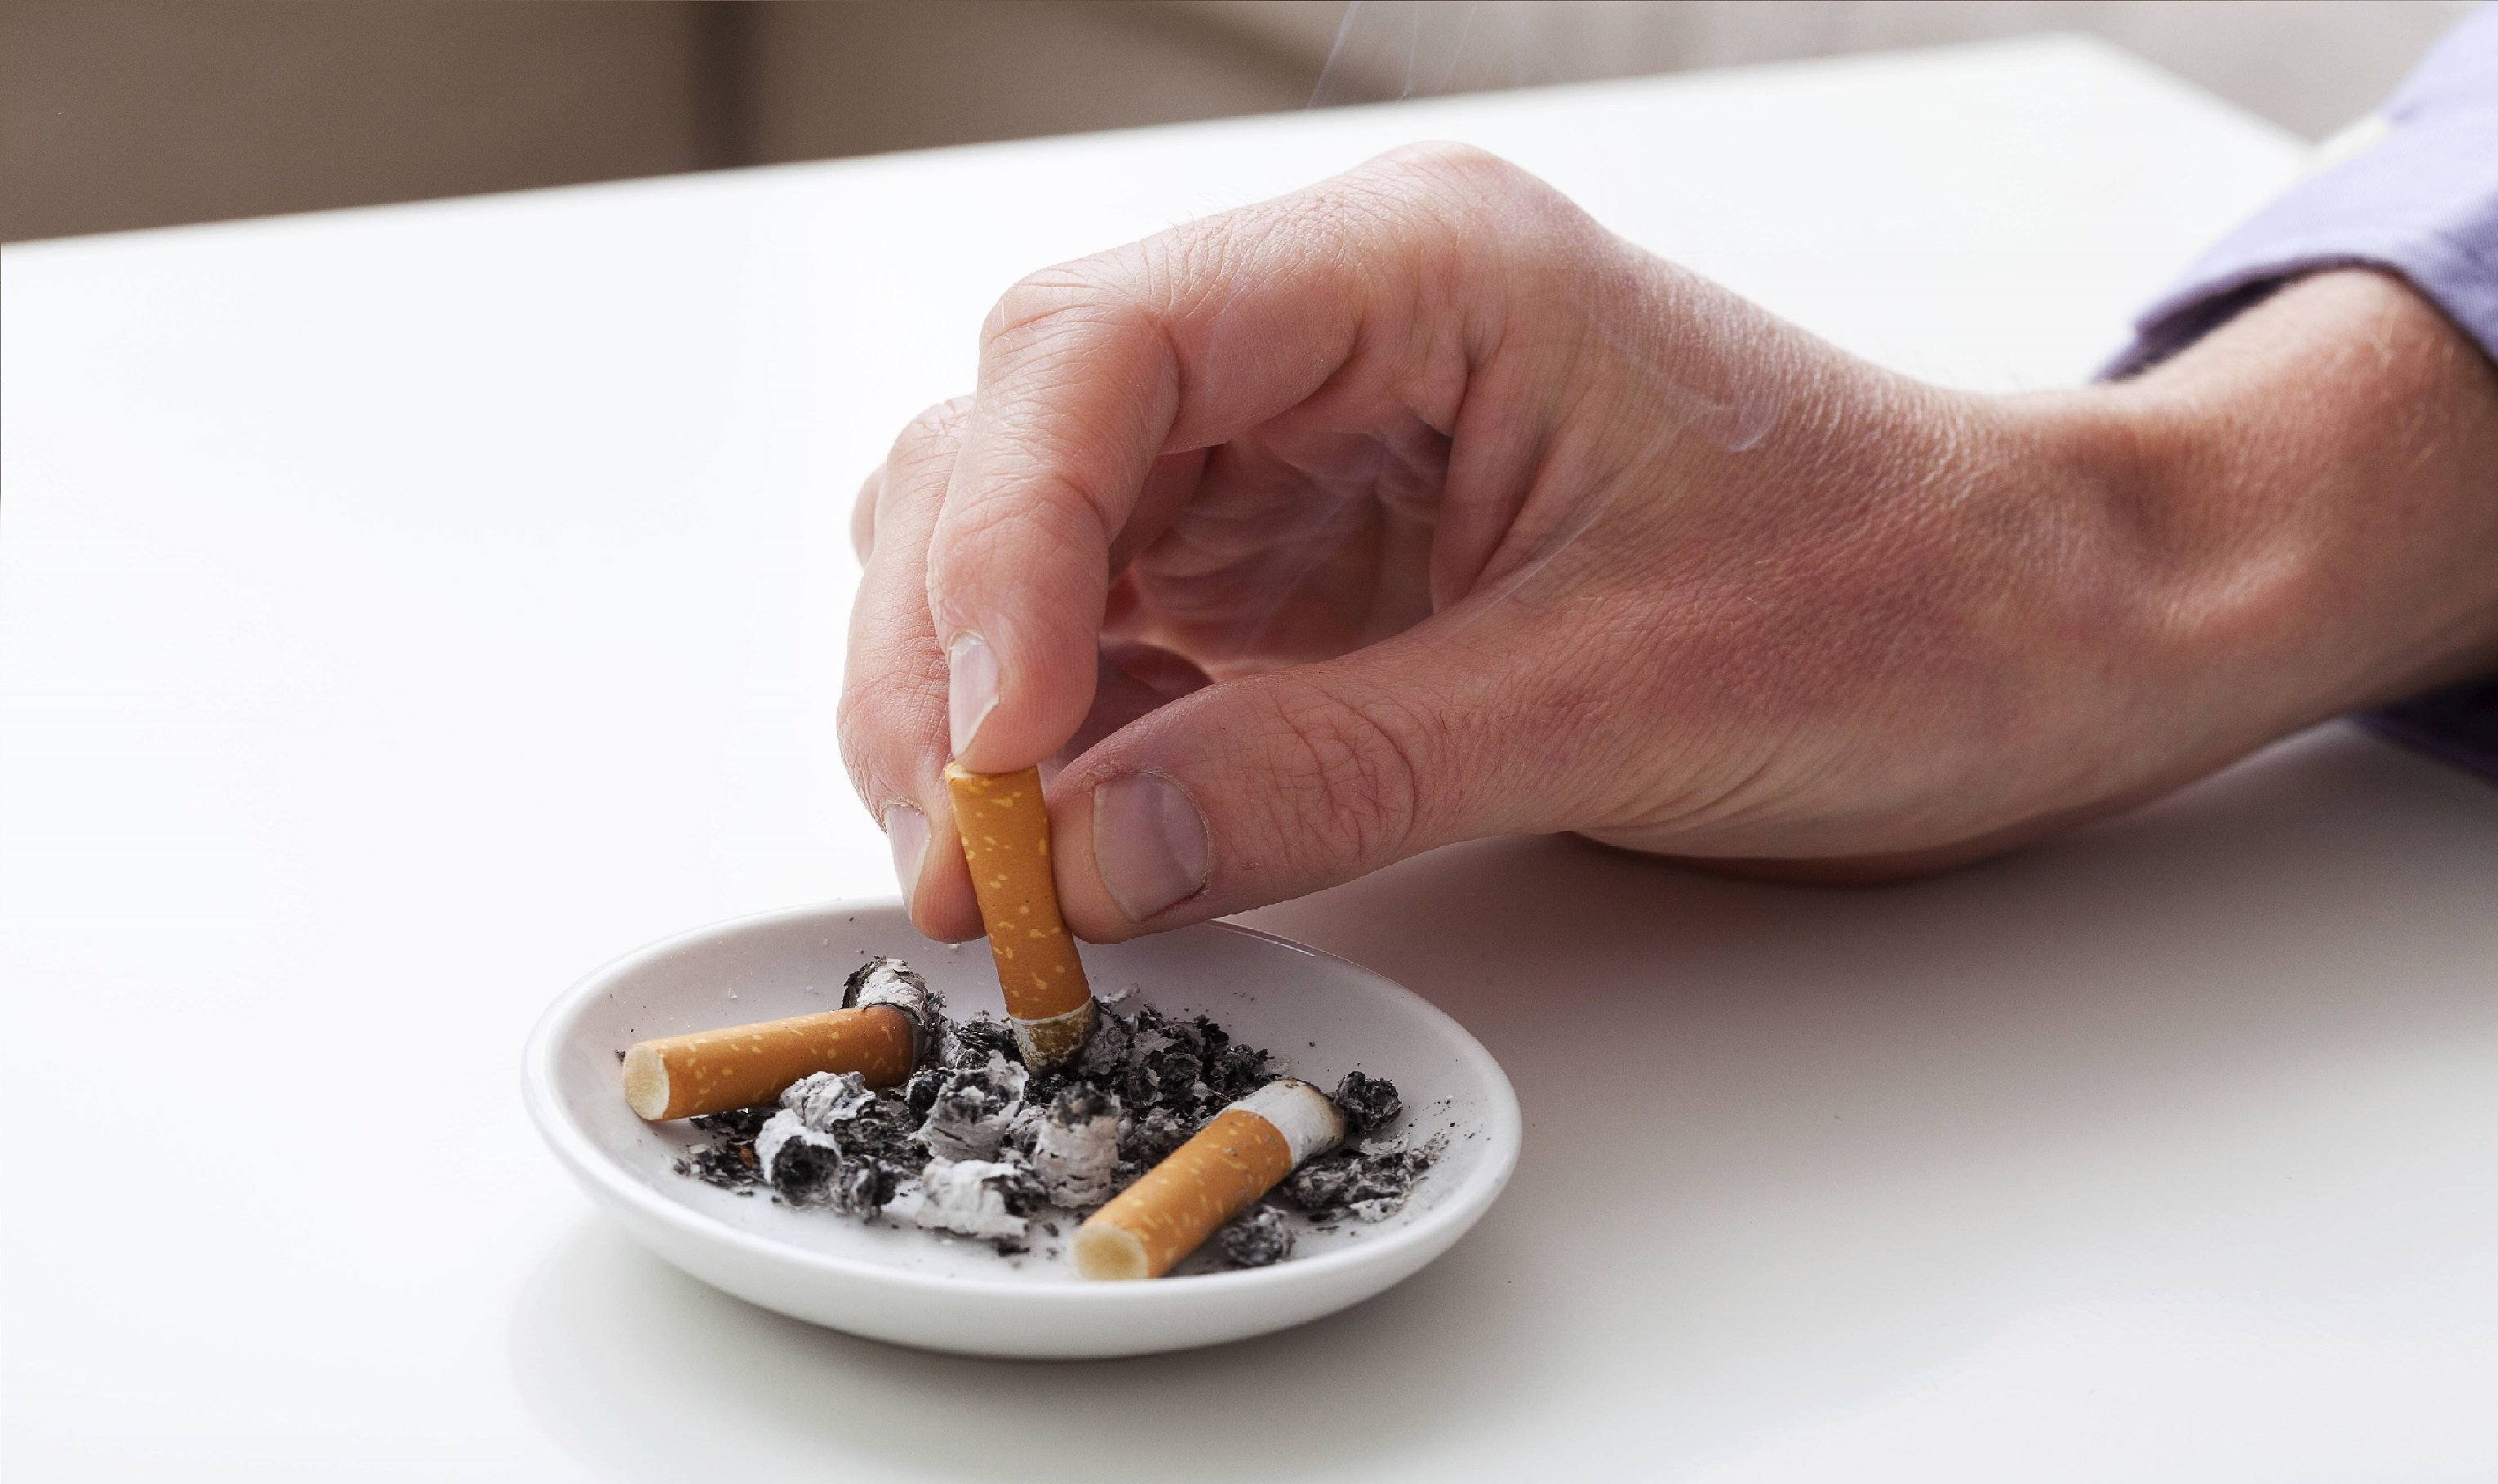 Hand blotting out cigarette in ashtray after learning about smoking and health insurance